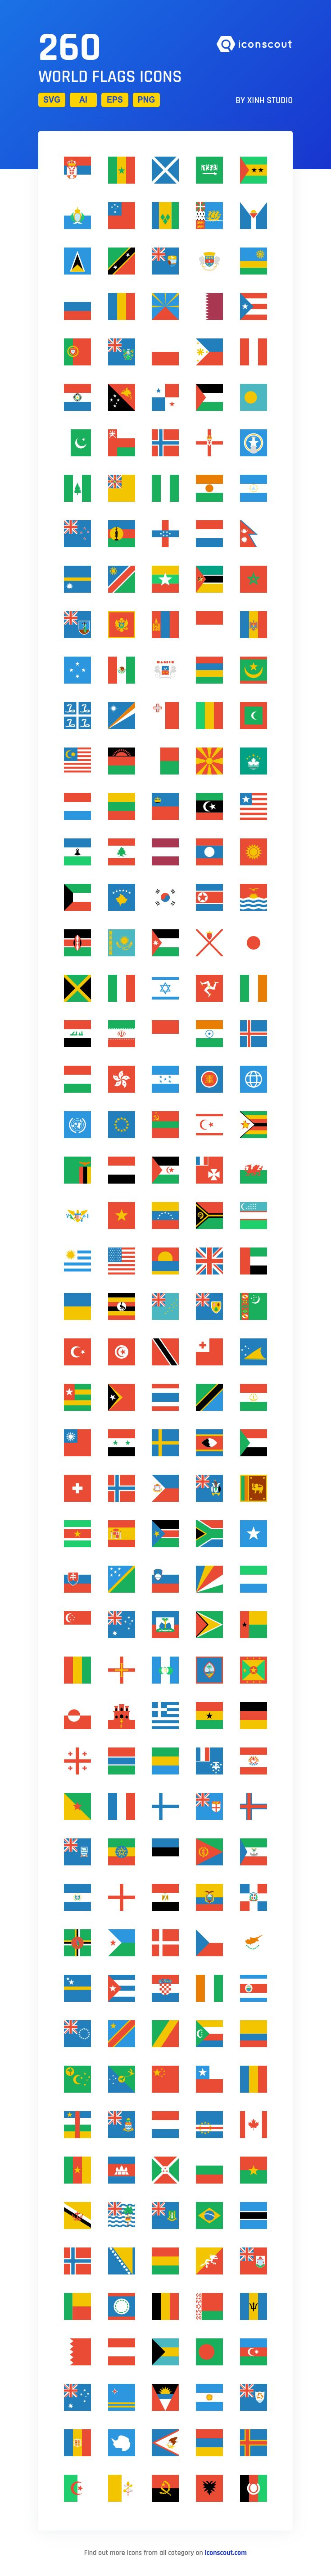 World Flags   Icon Pack - 260 Flat Icons